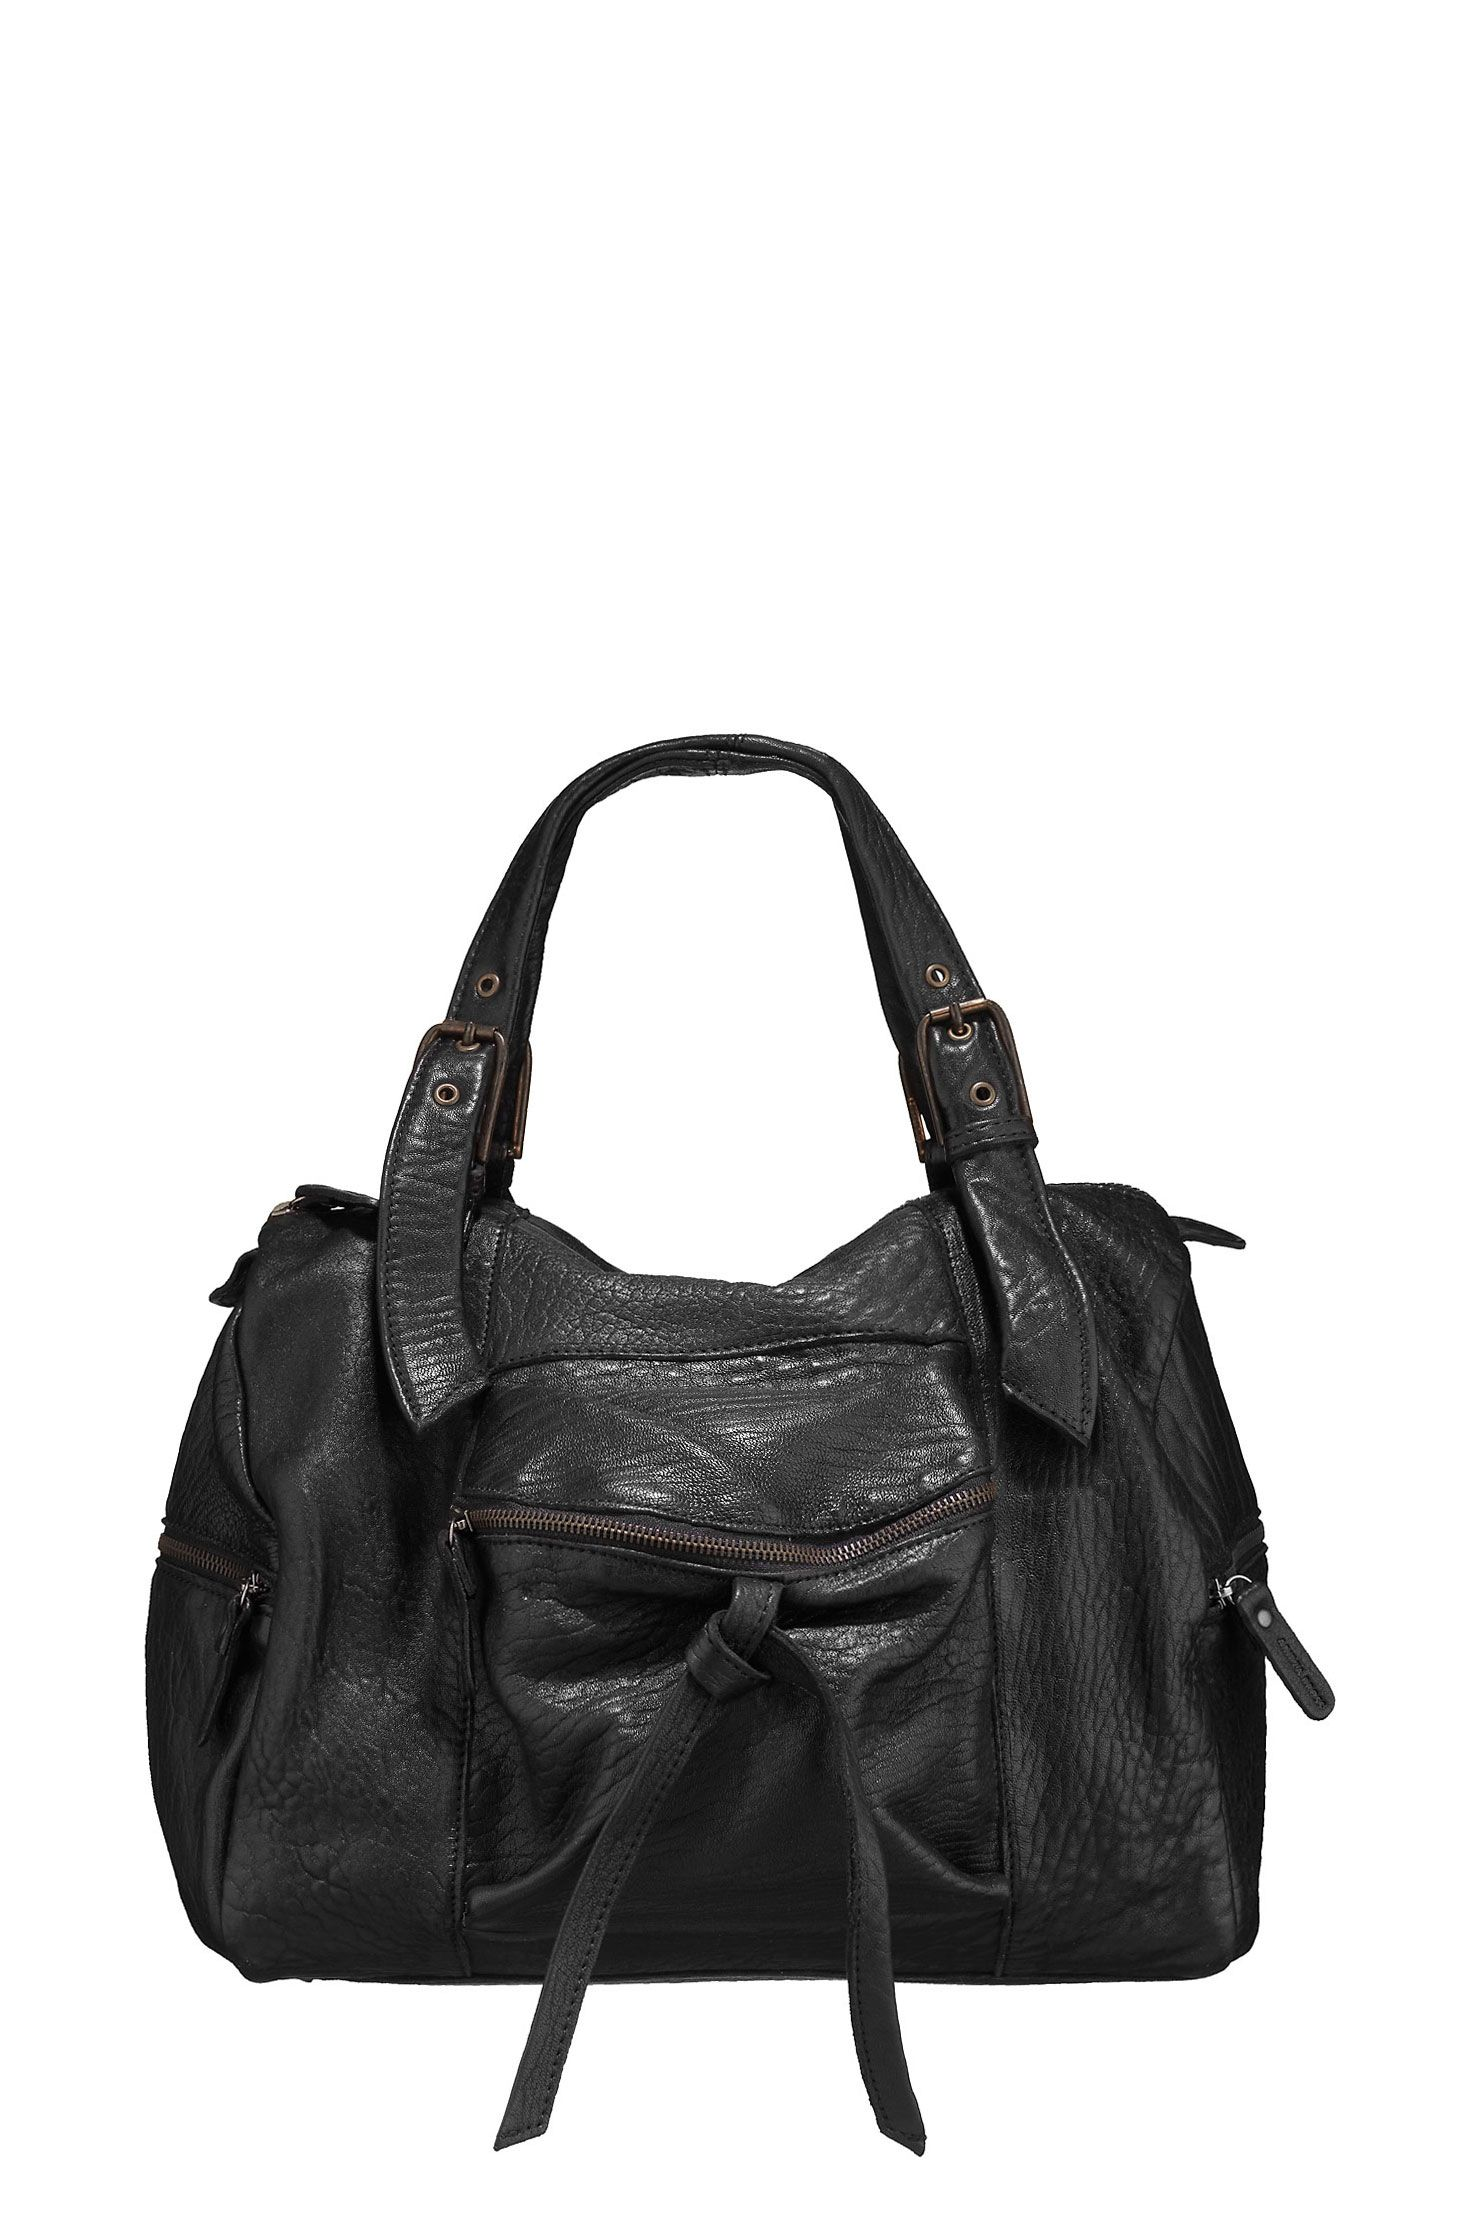 b1f2f5e0a48ce Sac en cuir Tania Made in France Noir Aridza bross sur MonShowroom ...